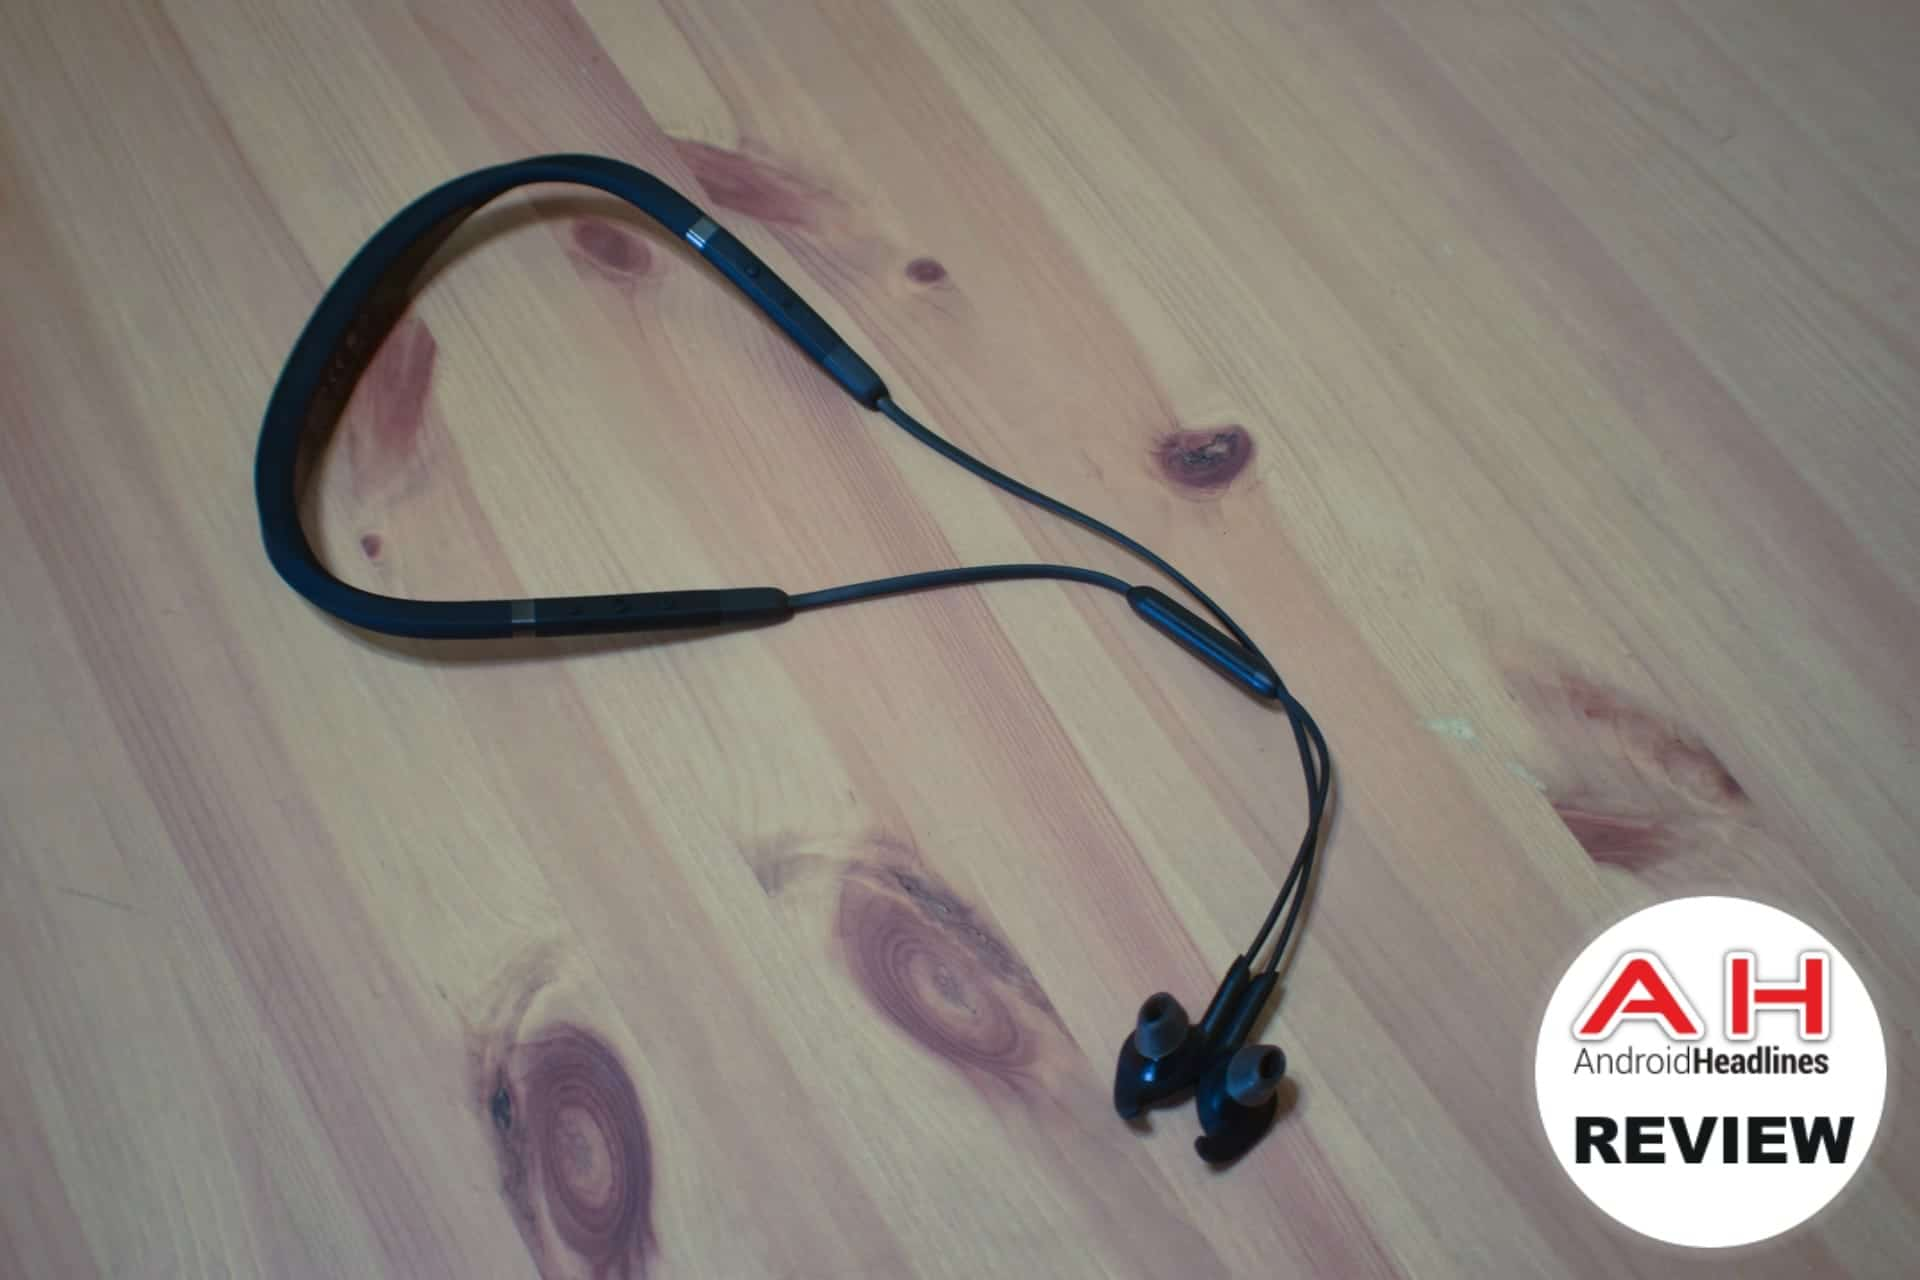 996ad7f01b5 Jabra Elite 65e Wireless Headphones Review: Affordable Neckband Headphones  Gain ANC – Technology Breaking News